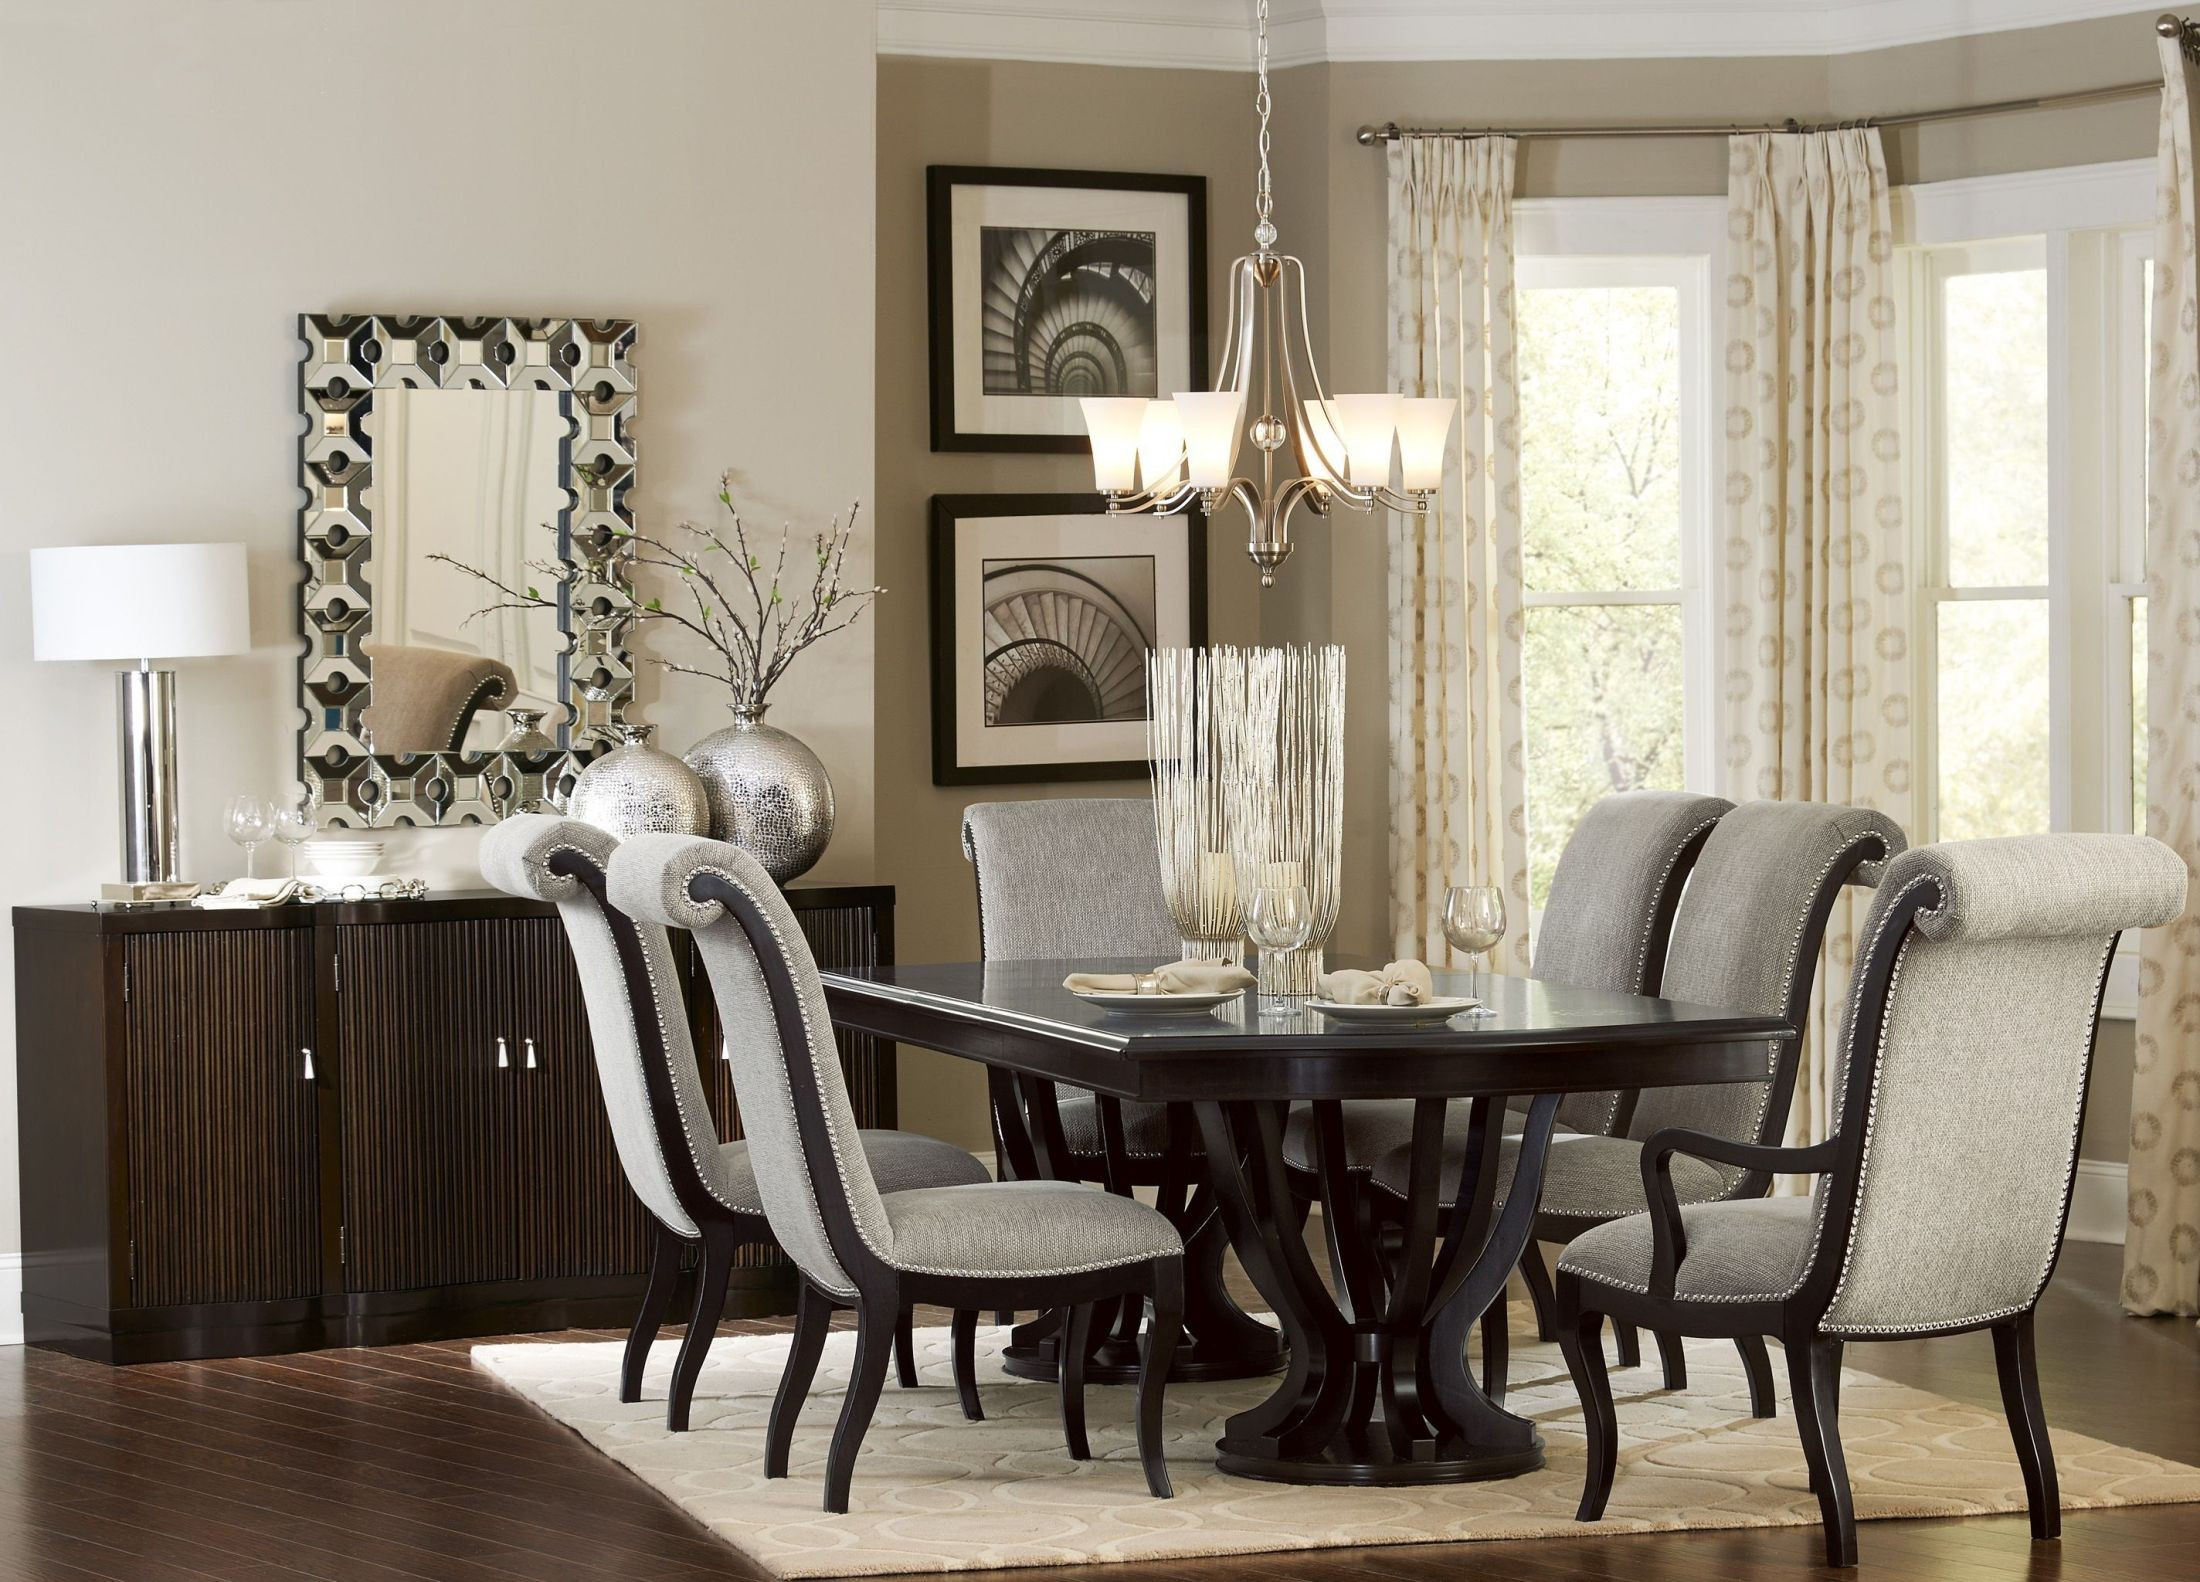 Best ideas about Dining Room Set . Save or Pin Savion Espresso Natural Tone Extendable Dining Room Set Now.